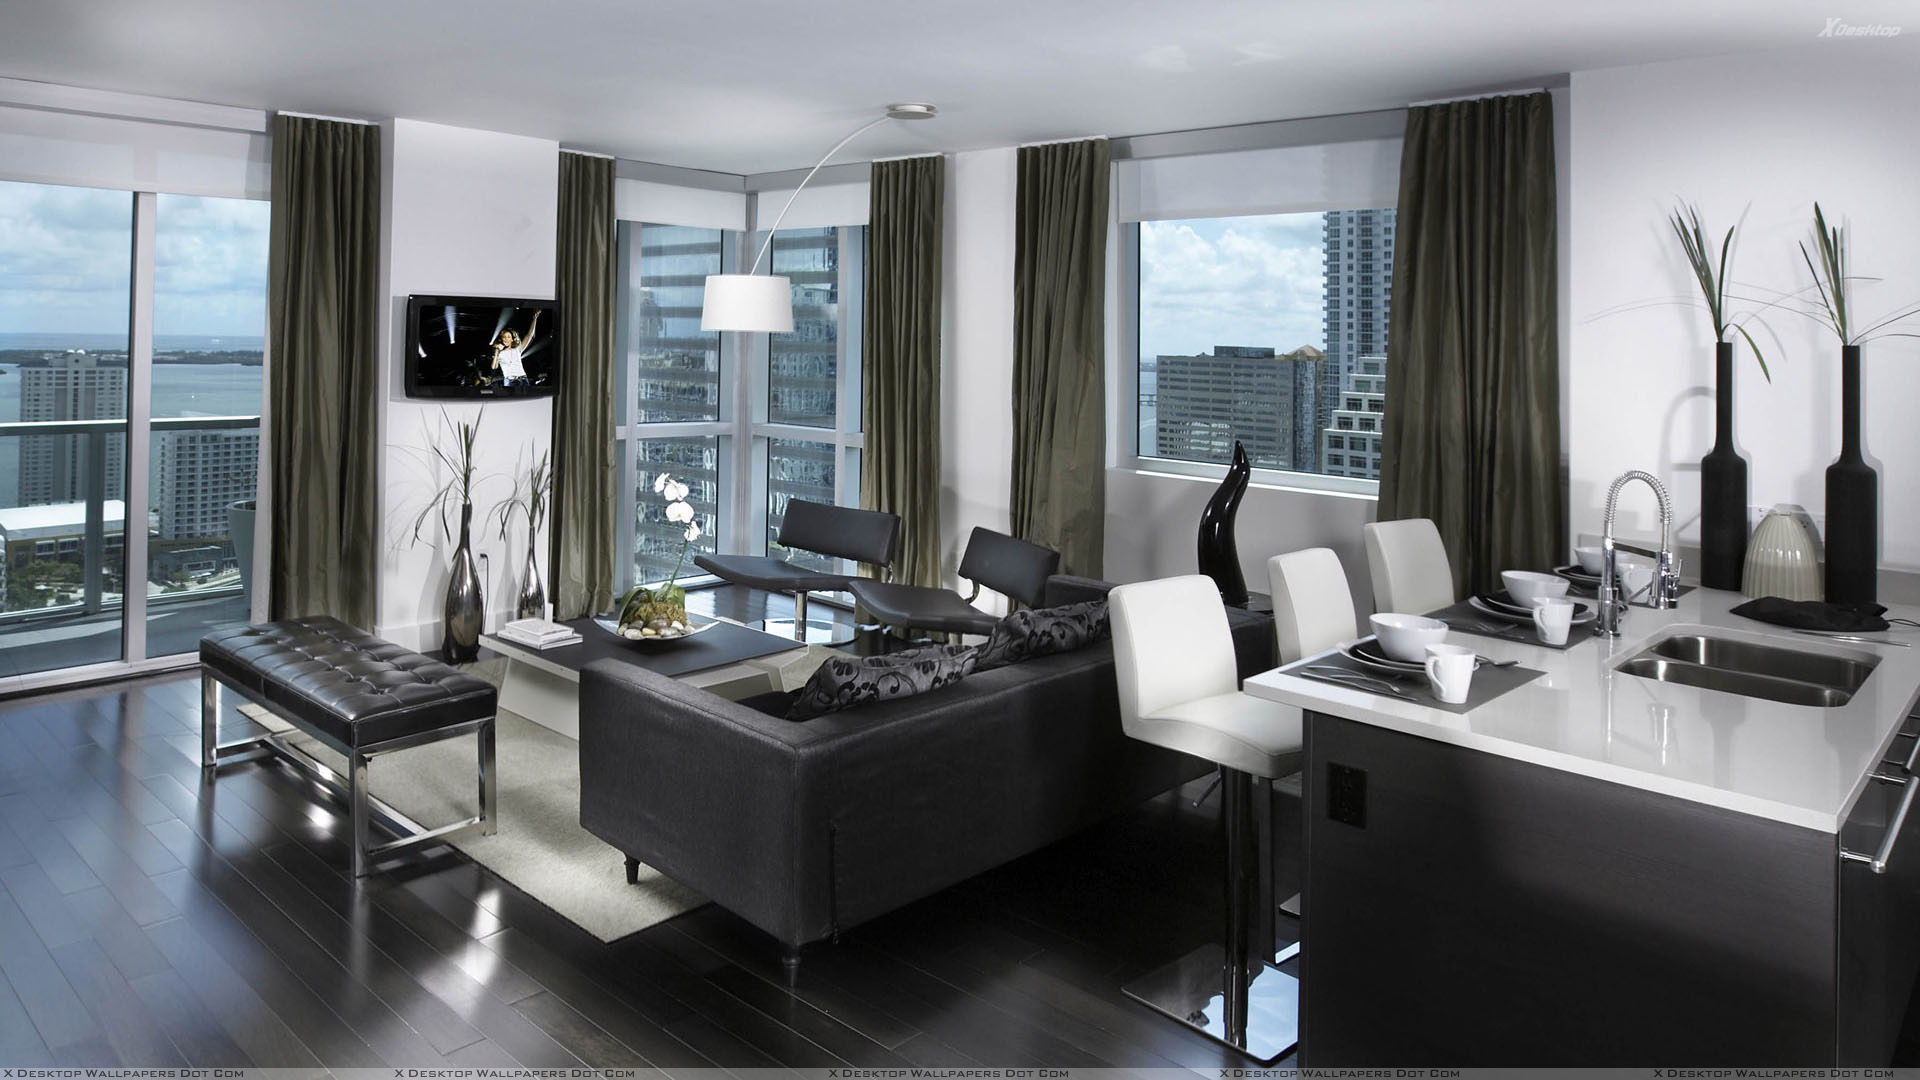 Black and white nice apartment interior wallpaper for Black and grey living room decorating ideas